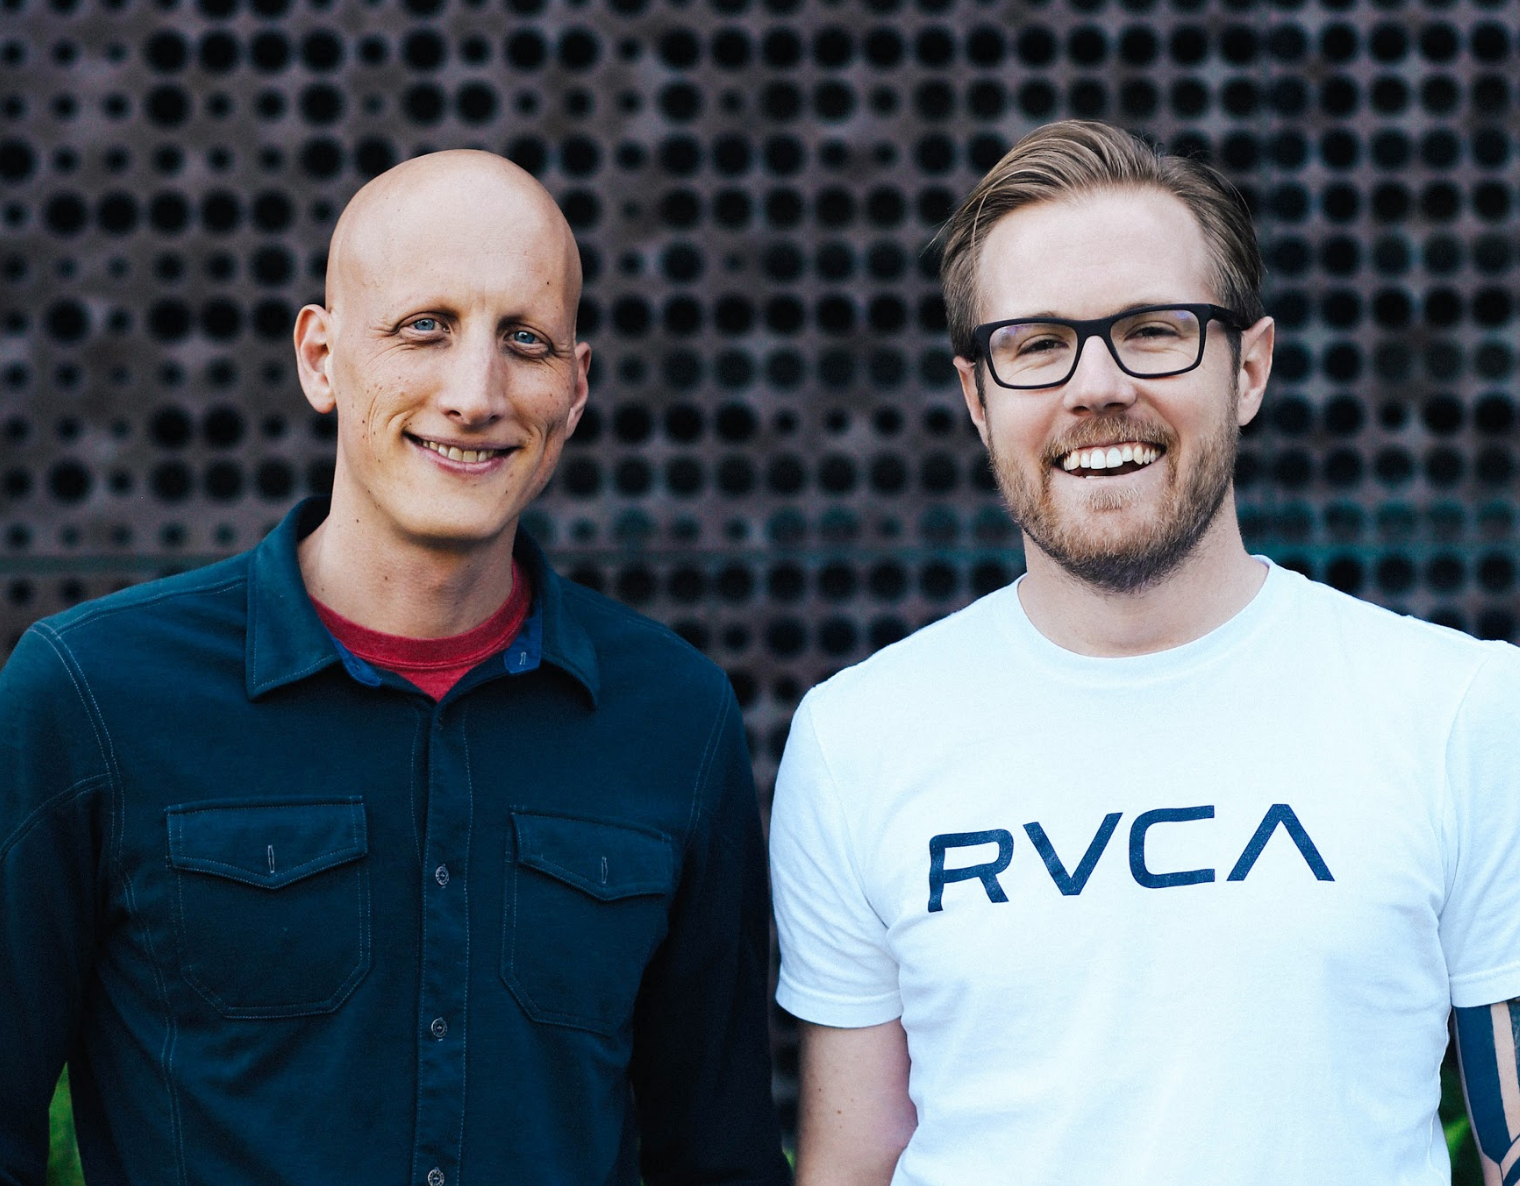 Holloway launches in-depth startup guides, aims to rewrite publishing with $4.6M from NYT, tech VCs 1